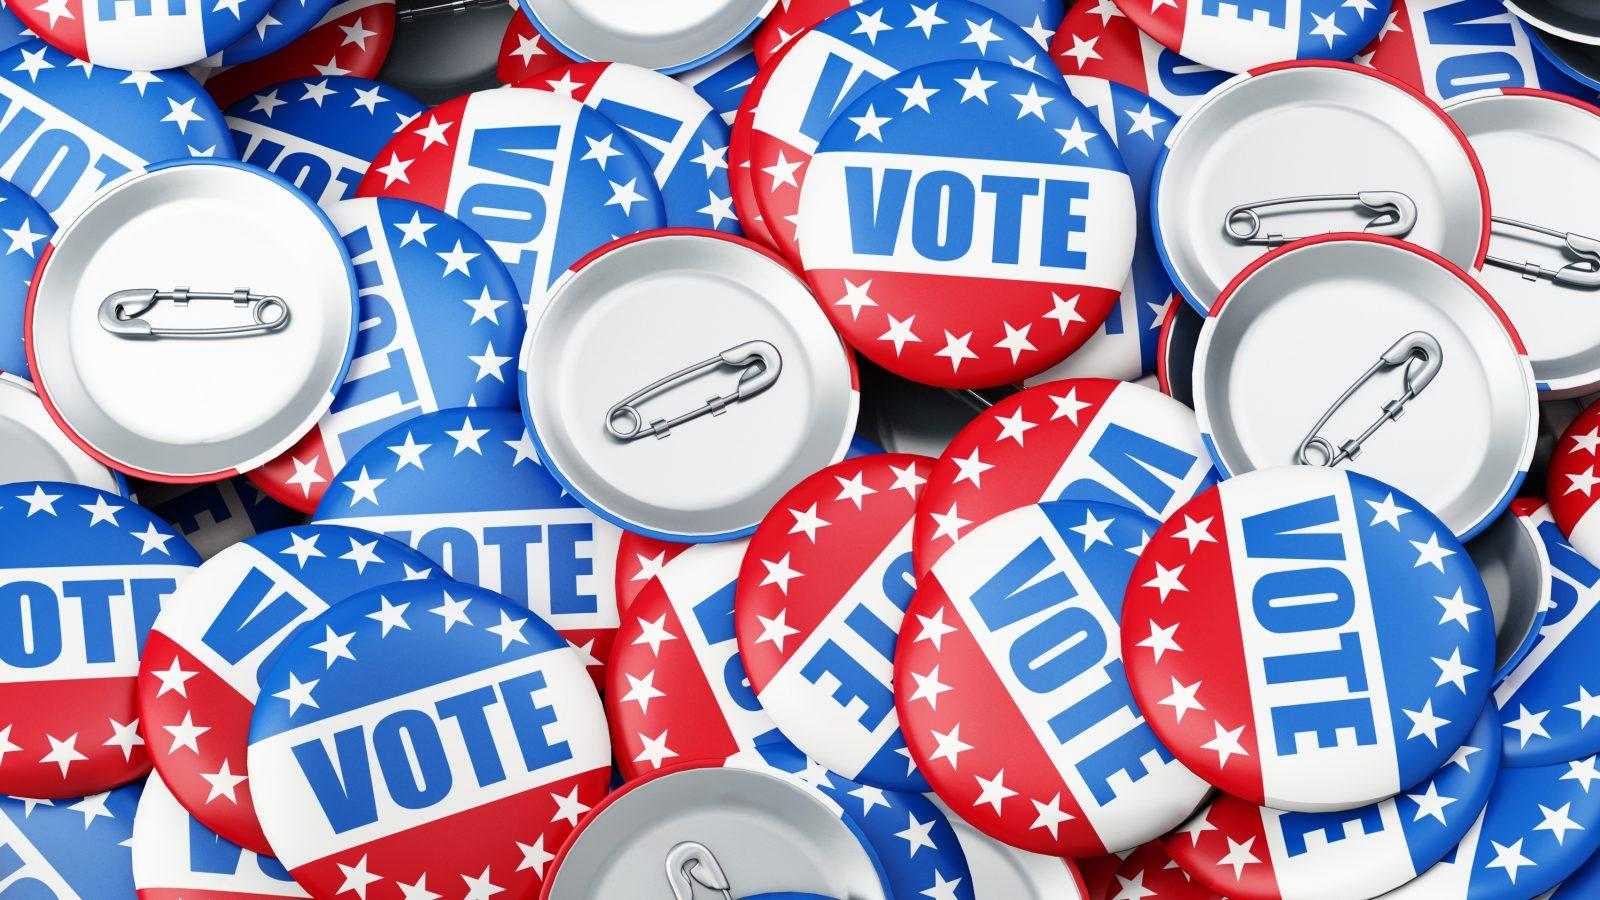 election day voting rights